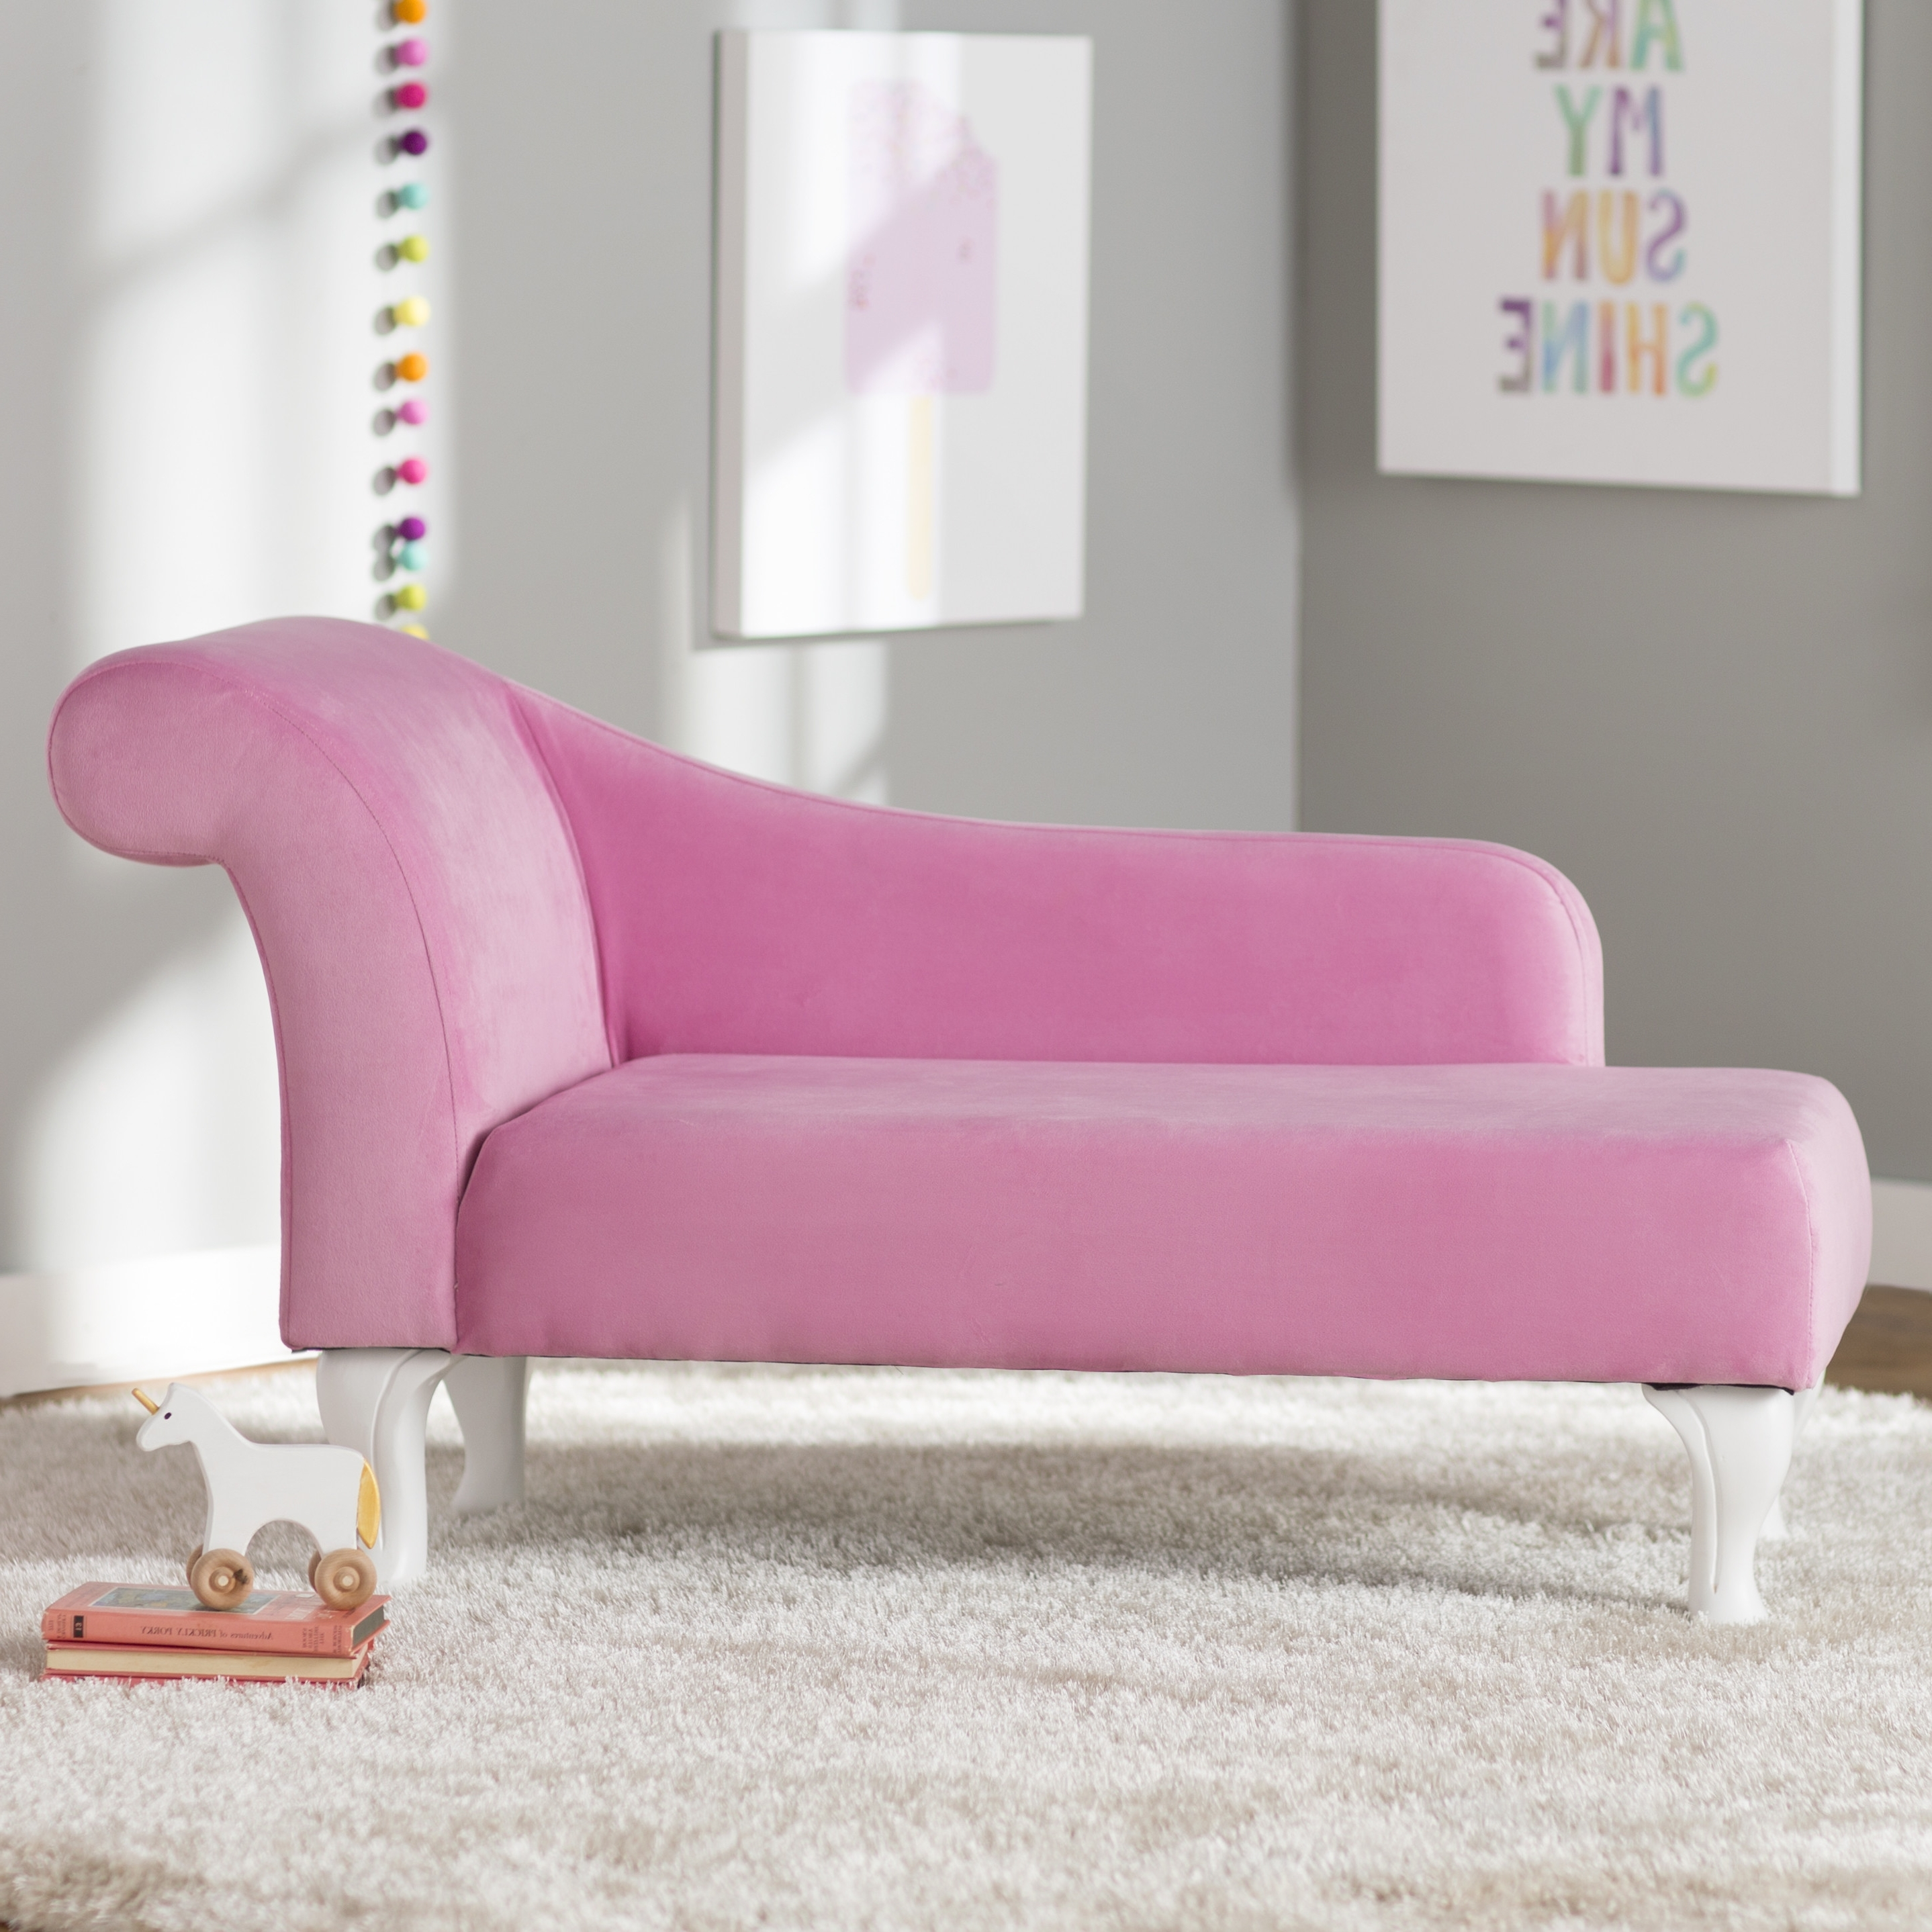 48 Kids Chaise Lounge, Kids Seating Wayfair – Warehousemold For Widely Used Children's Chaise Lounges (View 8 of 15)